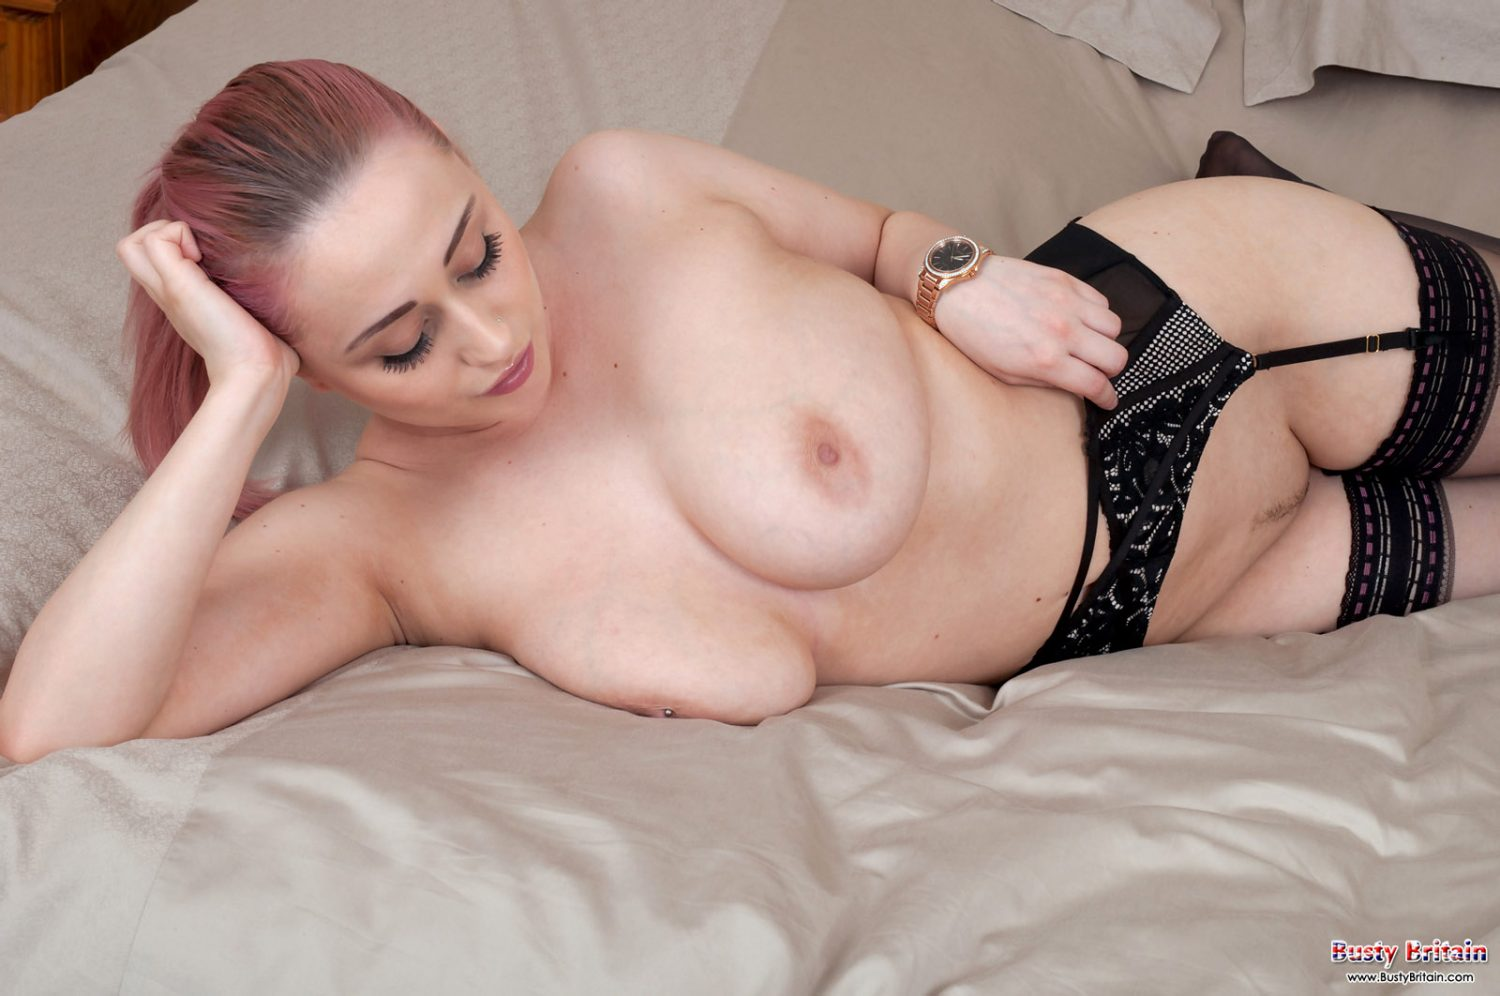 The Block's Suzi Taylor Goes Braless And Reveals Fuller Chest In A Very Sheer Black Top